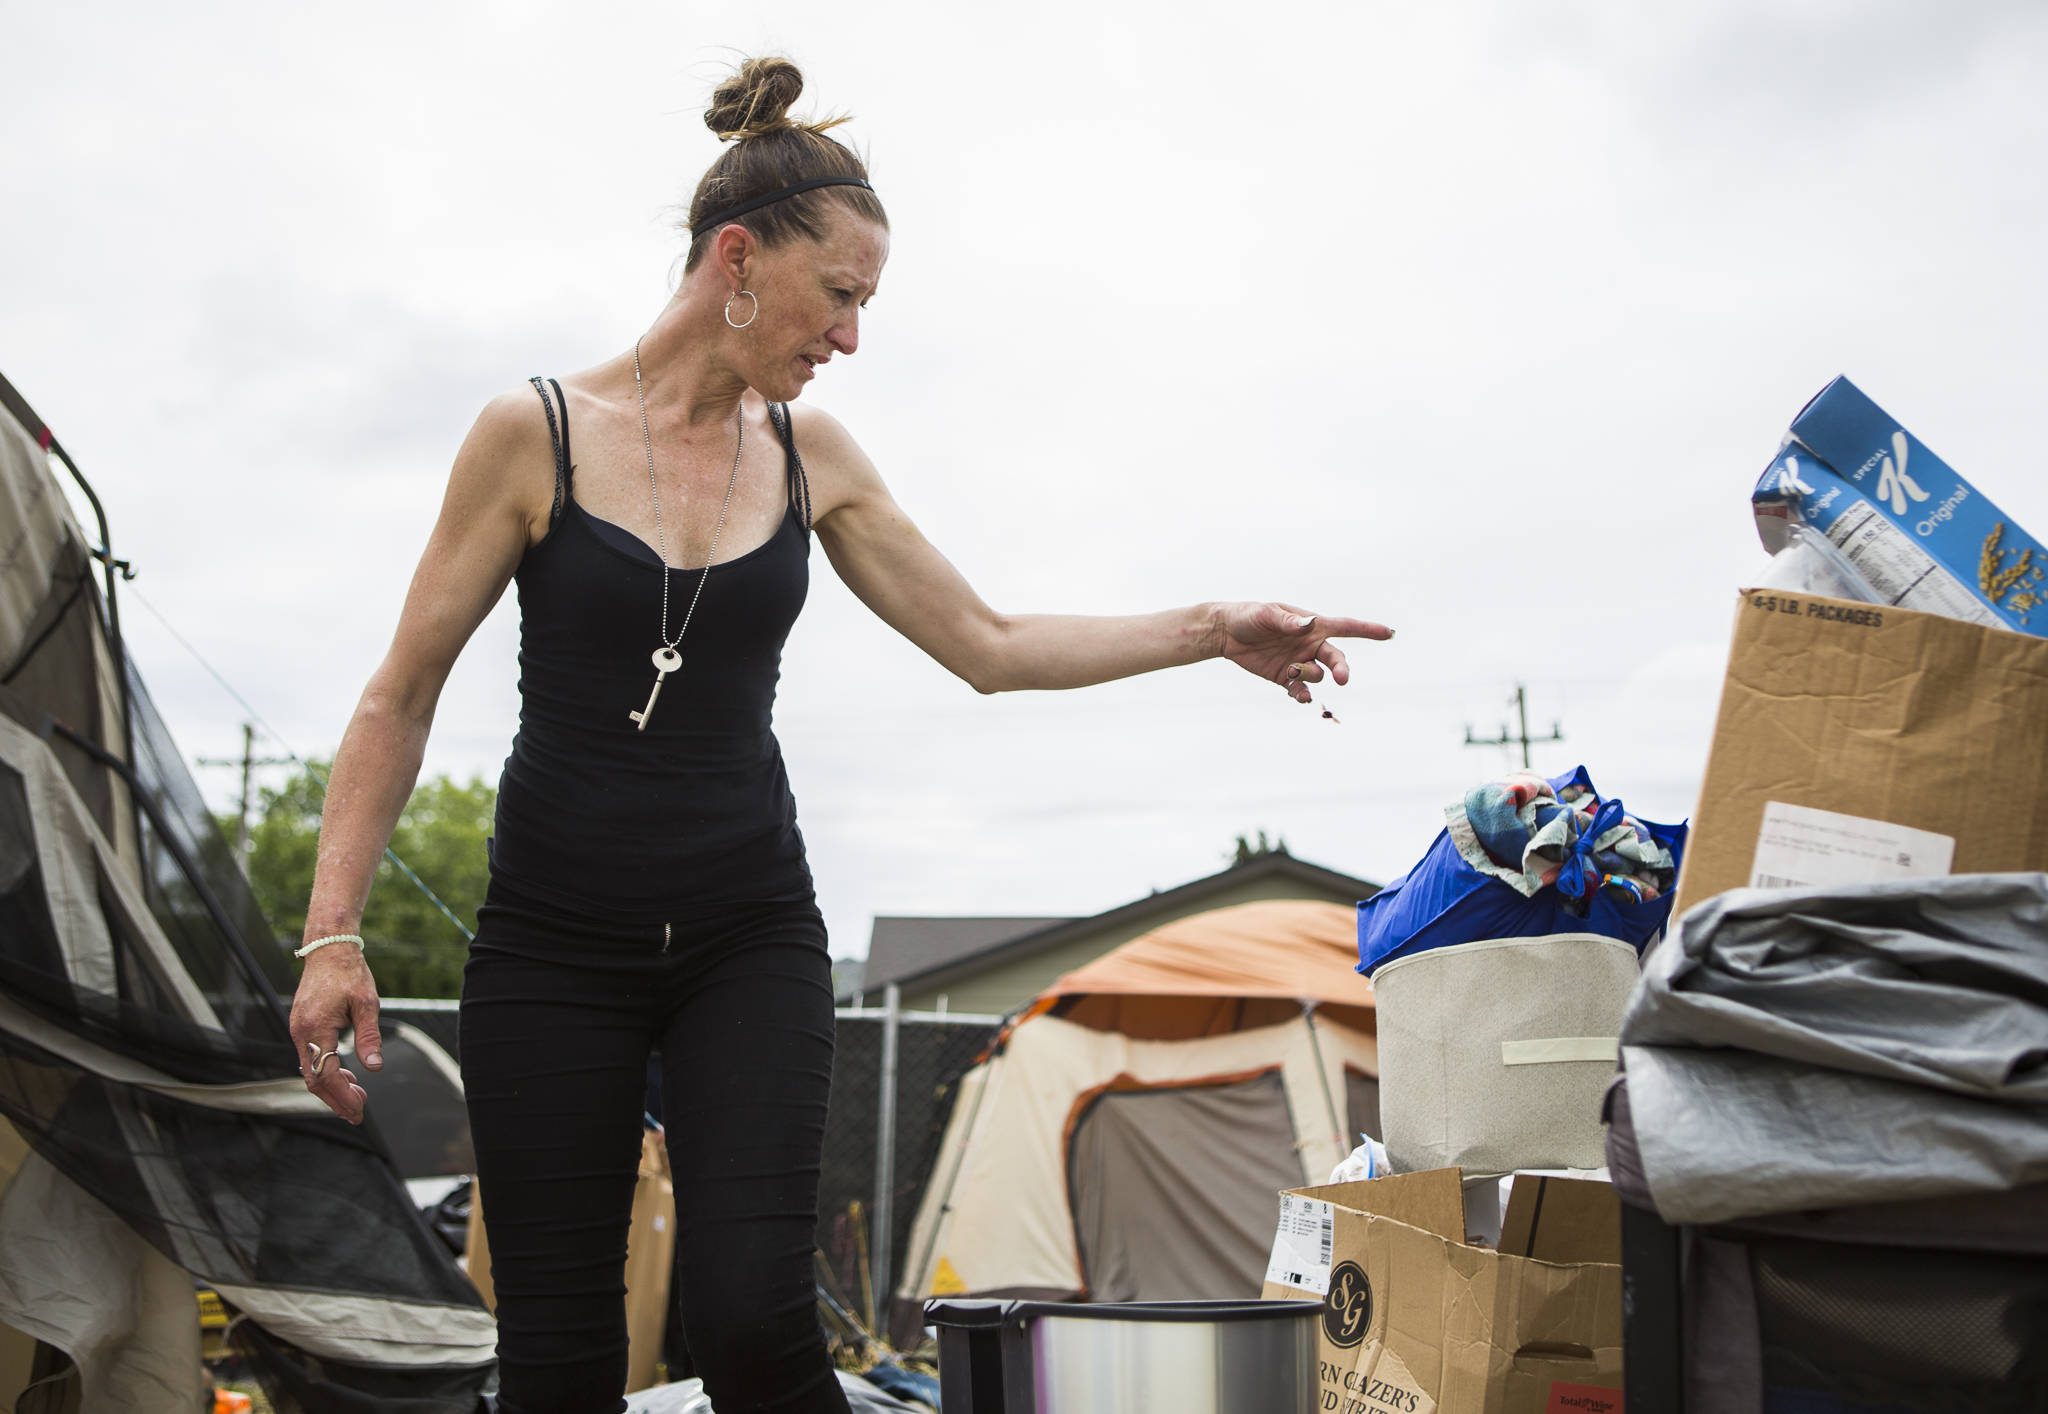 Kimberly Bailey organizes her belongings as she packs to leave her camp on Thursday in Everett. (Olivia Vanni / The Herald)